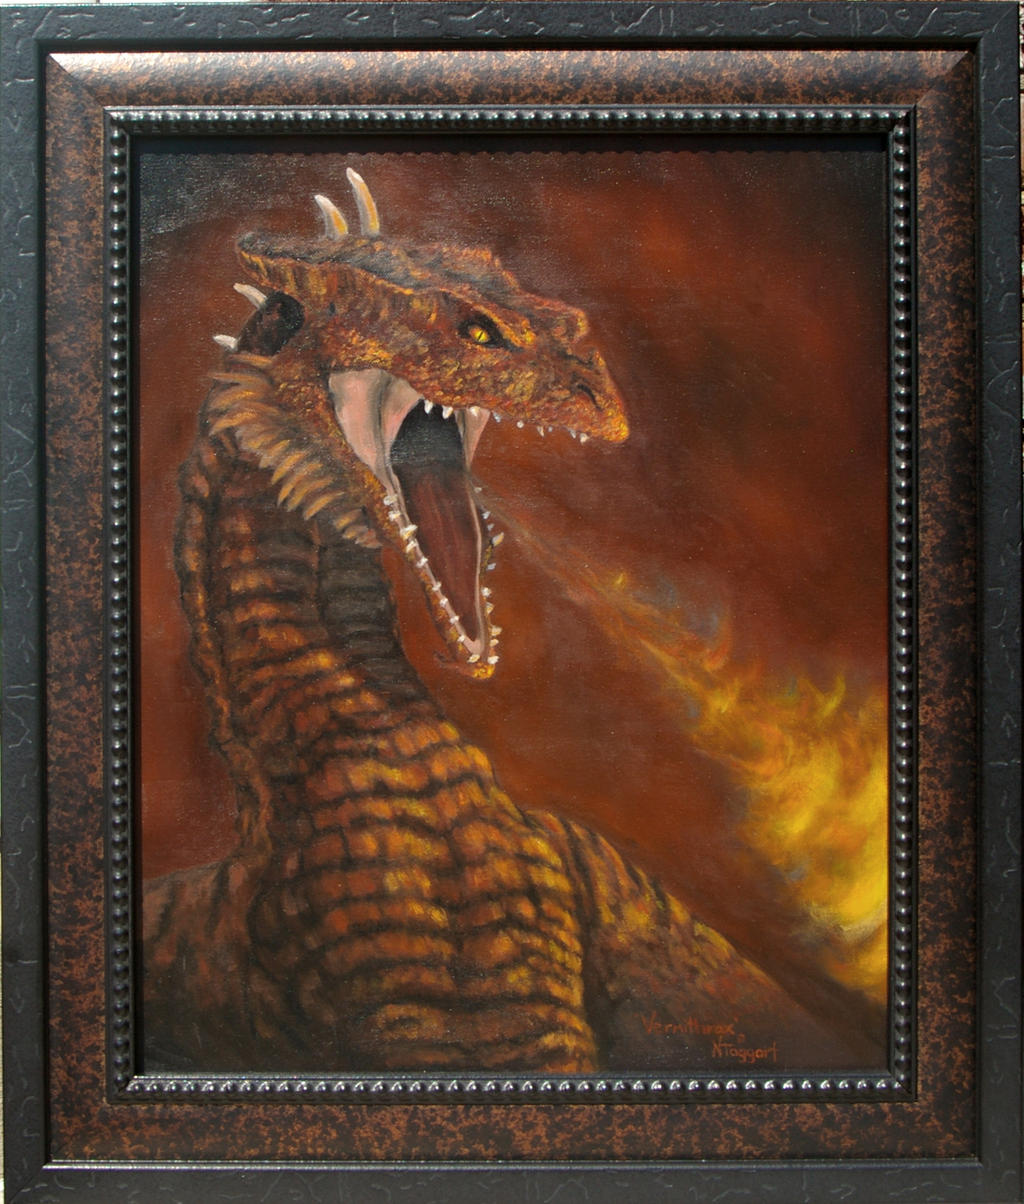 Vermithrax (framed) by Coi-kins